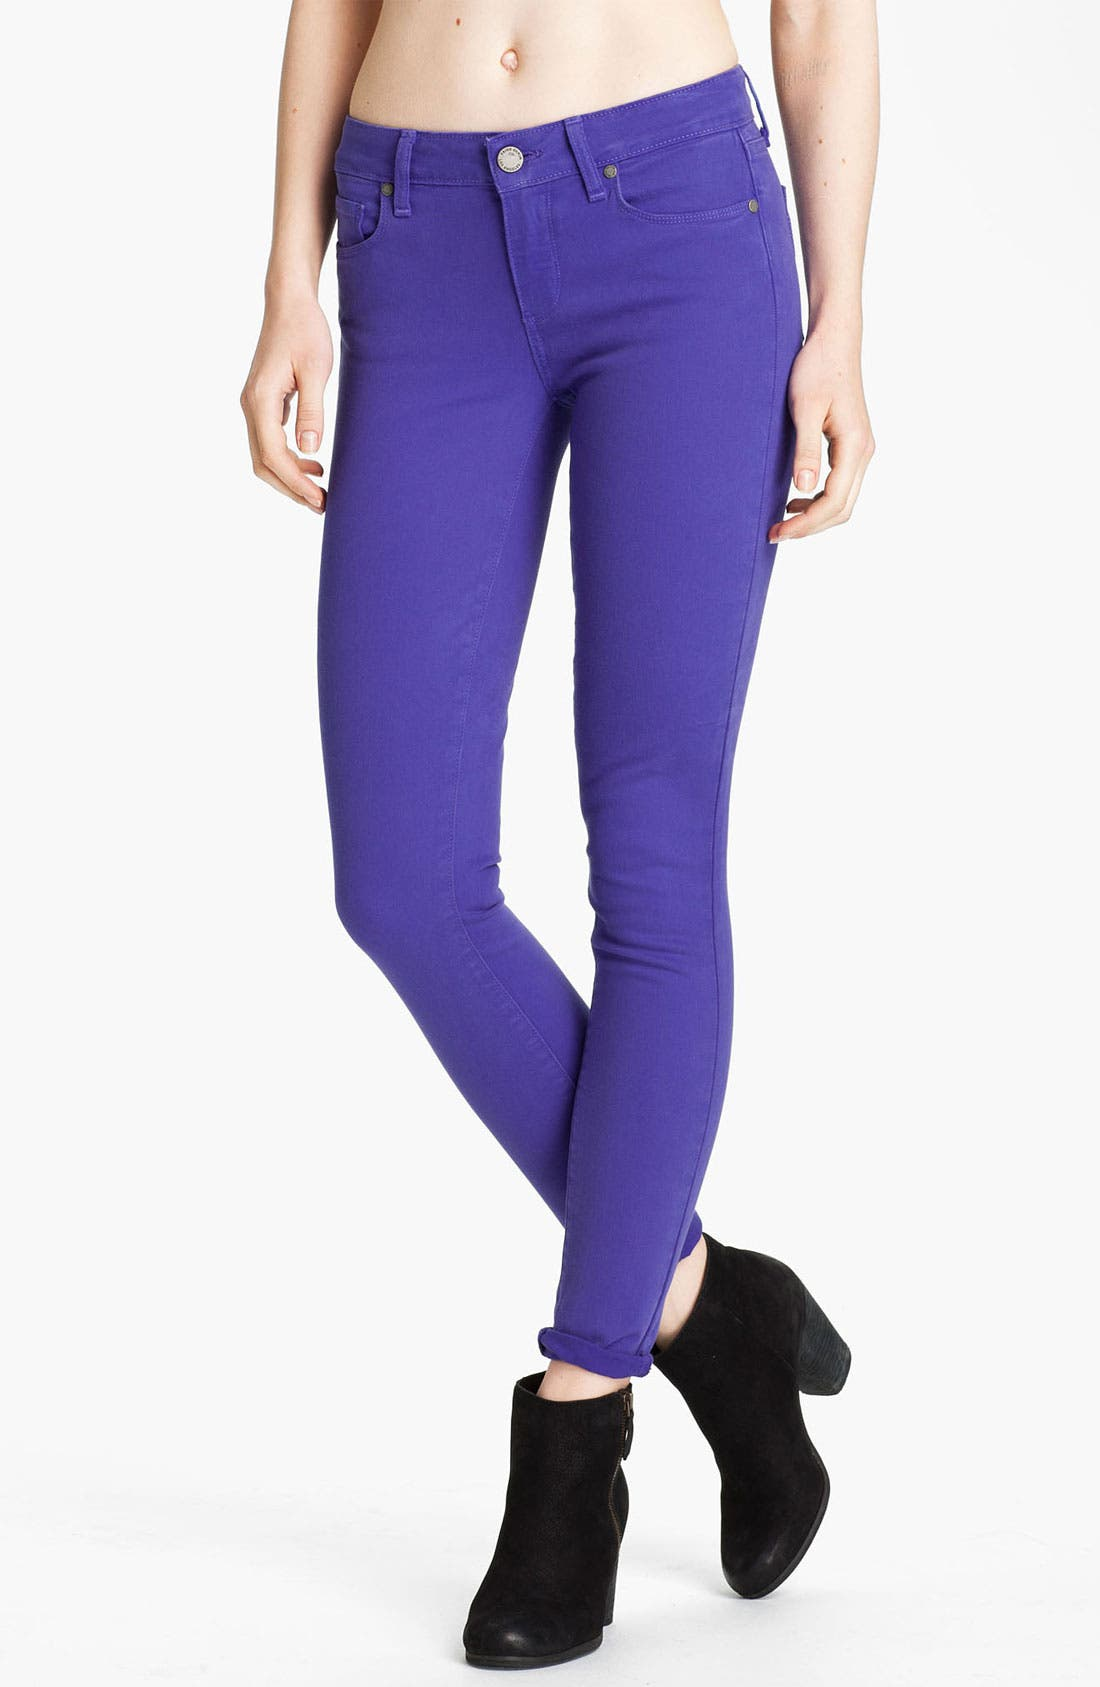 Alternate Image 1 Selected - Paige Denim 'Verdugo' Skinny Stretch Denim Jeans (Violet Blue)